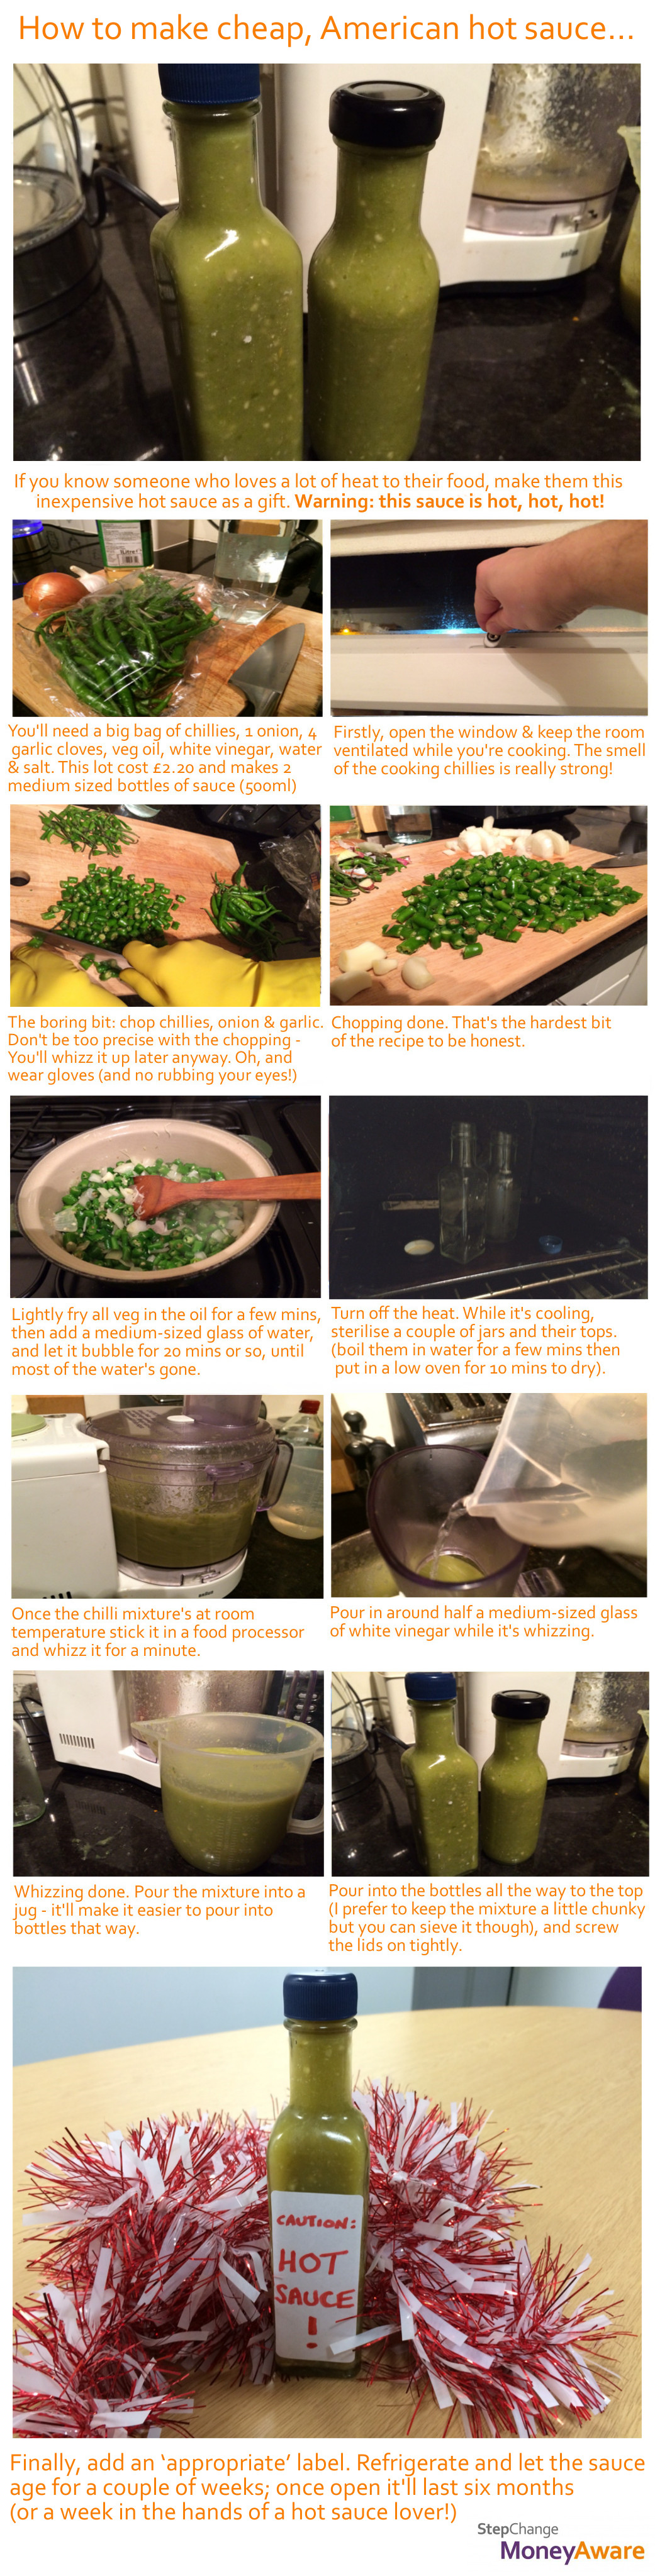 step by step visuals to make hot sauce